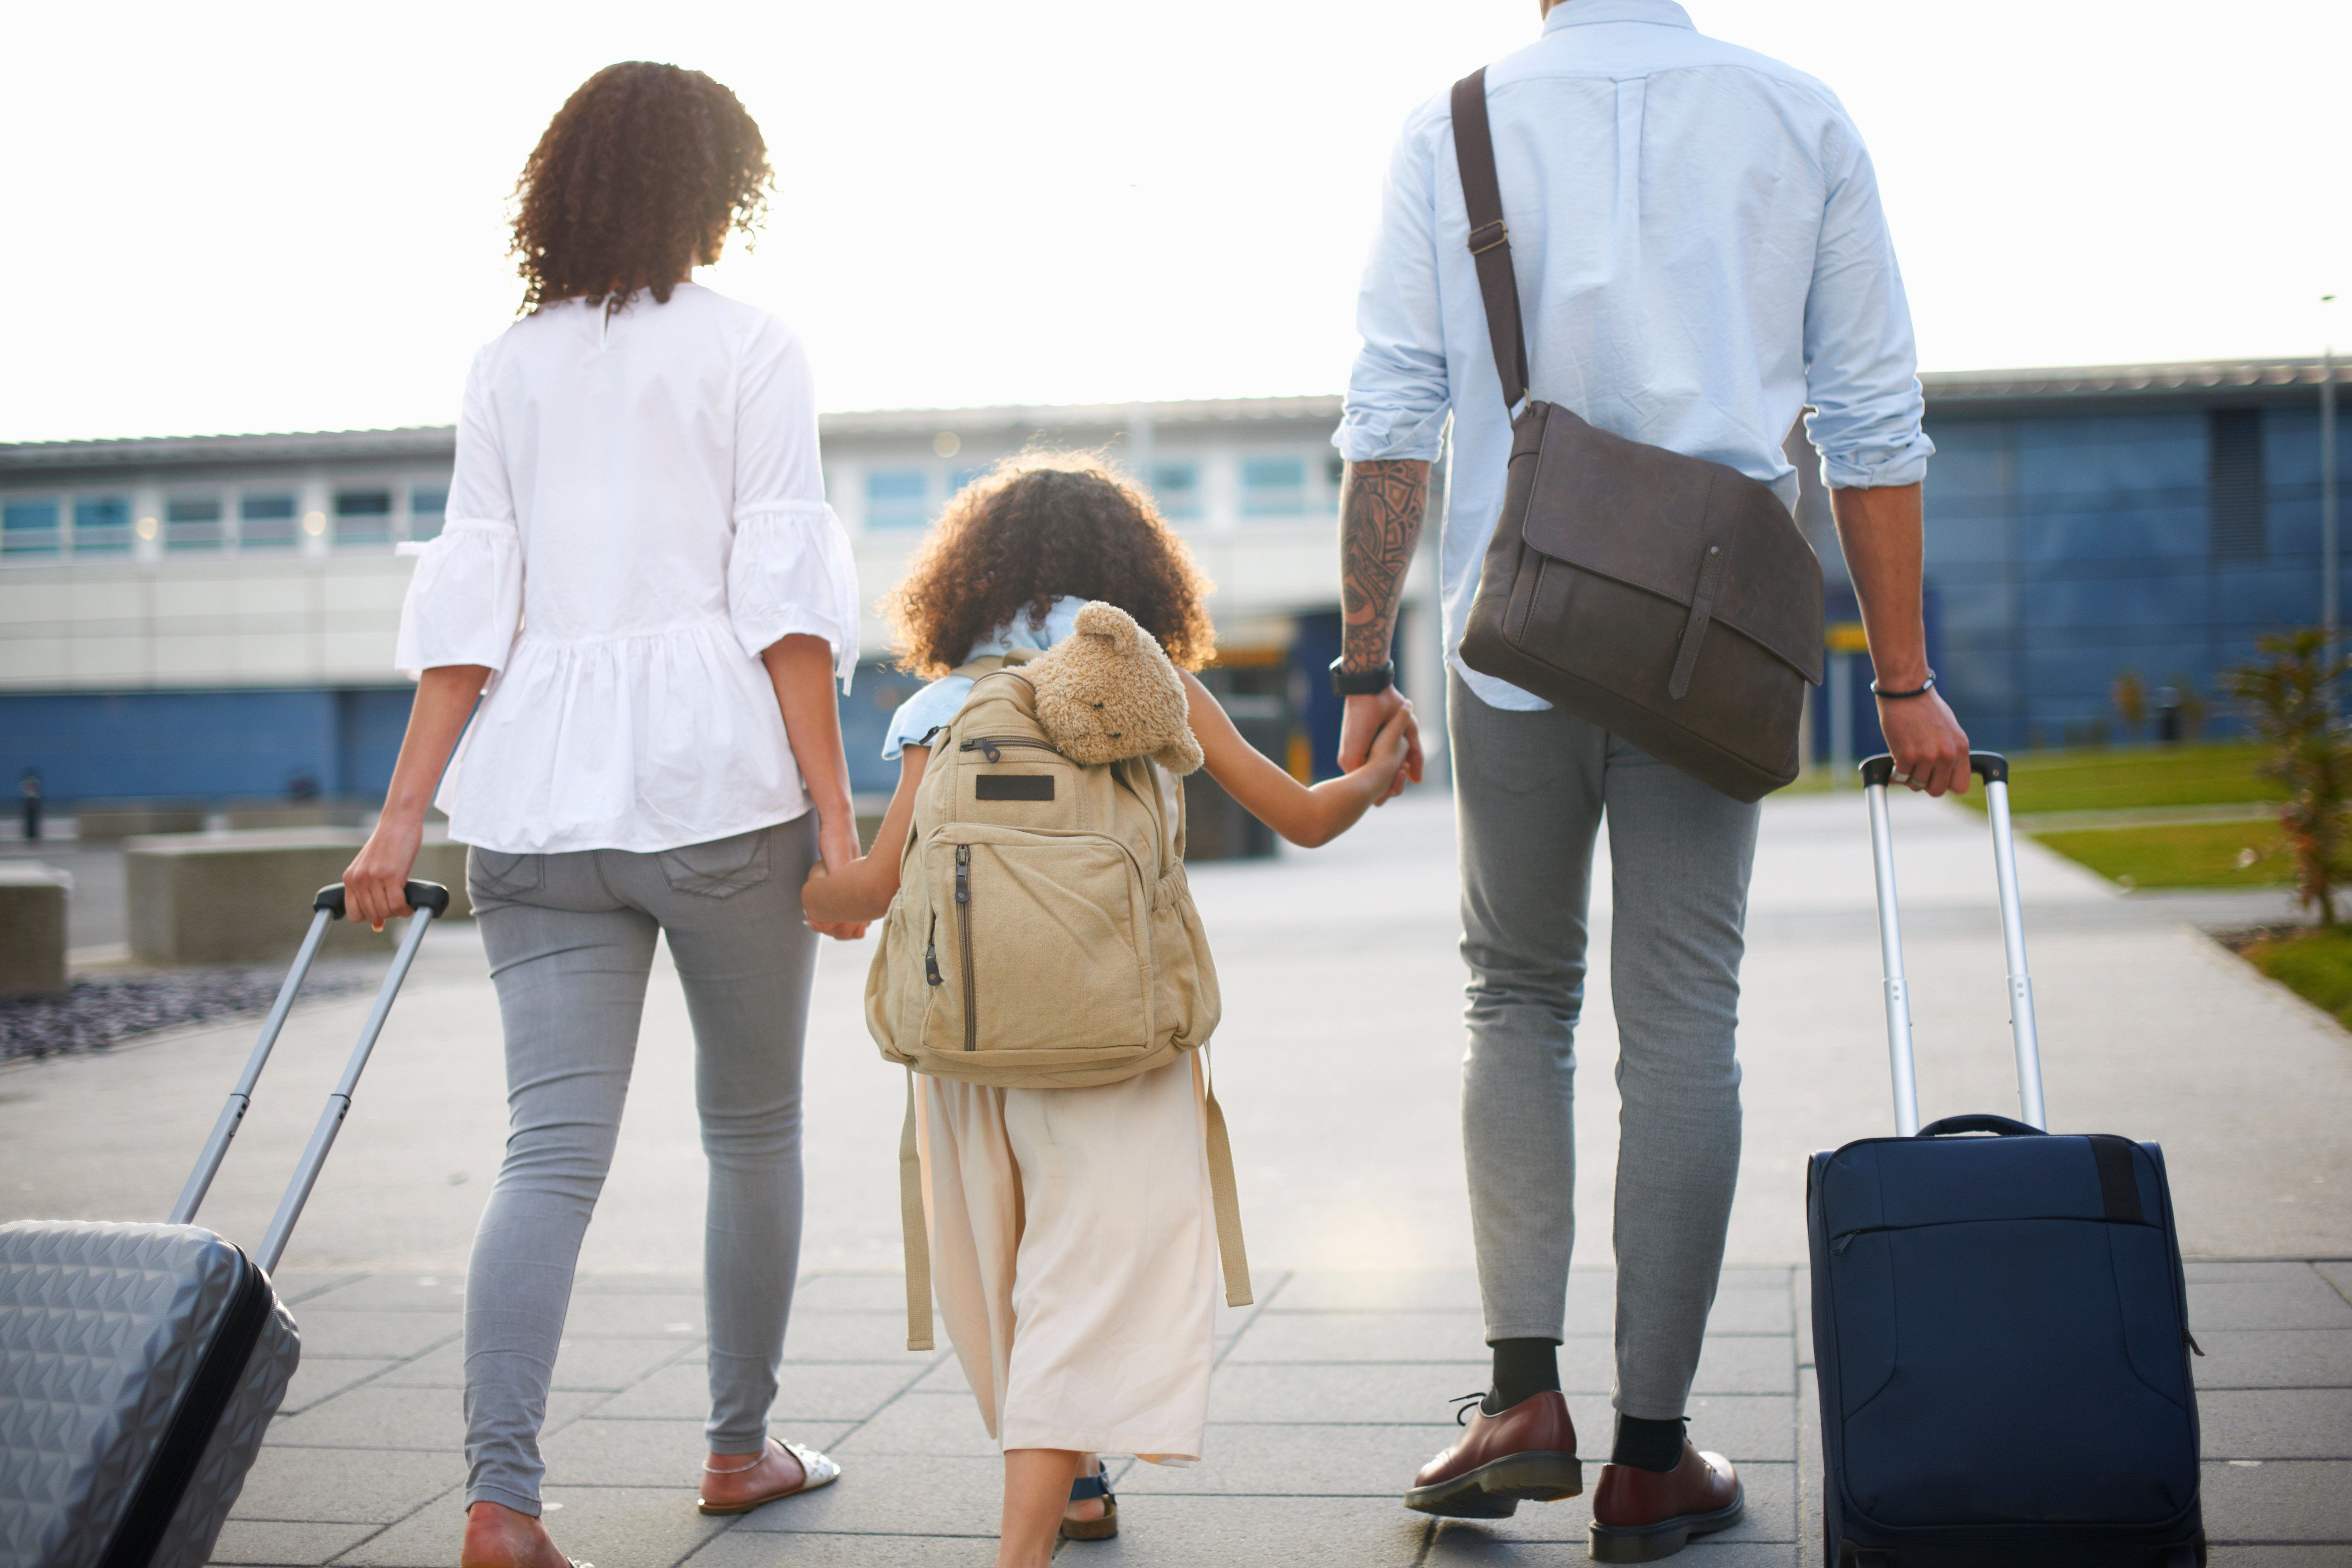 'It's Been Getting More Difficult': The Complexities Of Travelling With Kids When You Have Different